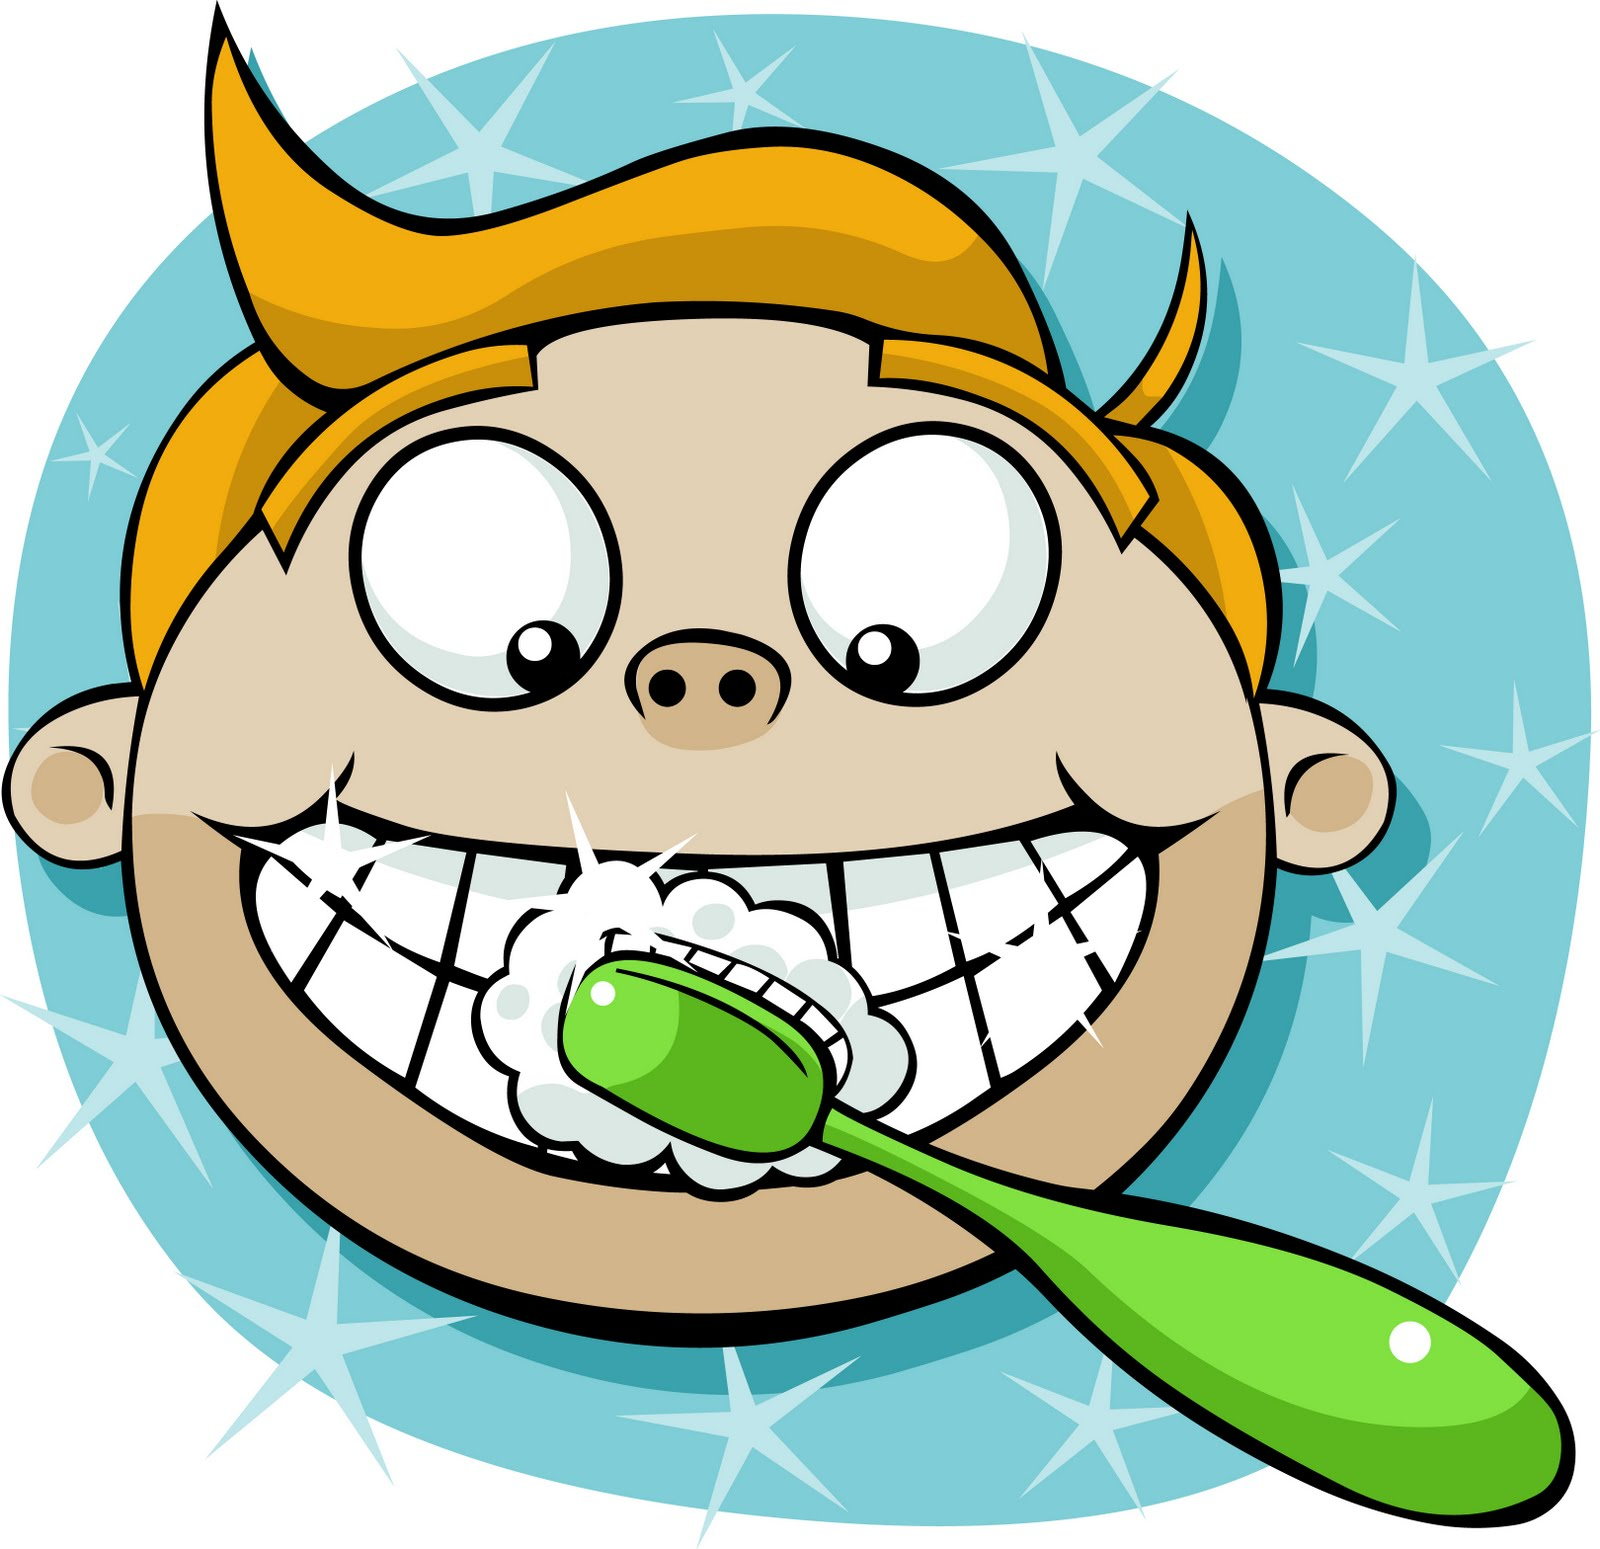 Free brushing teeth cliparts. Mouth clipart brush